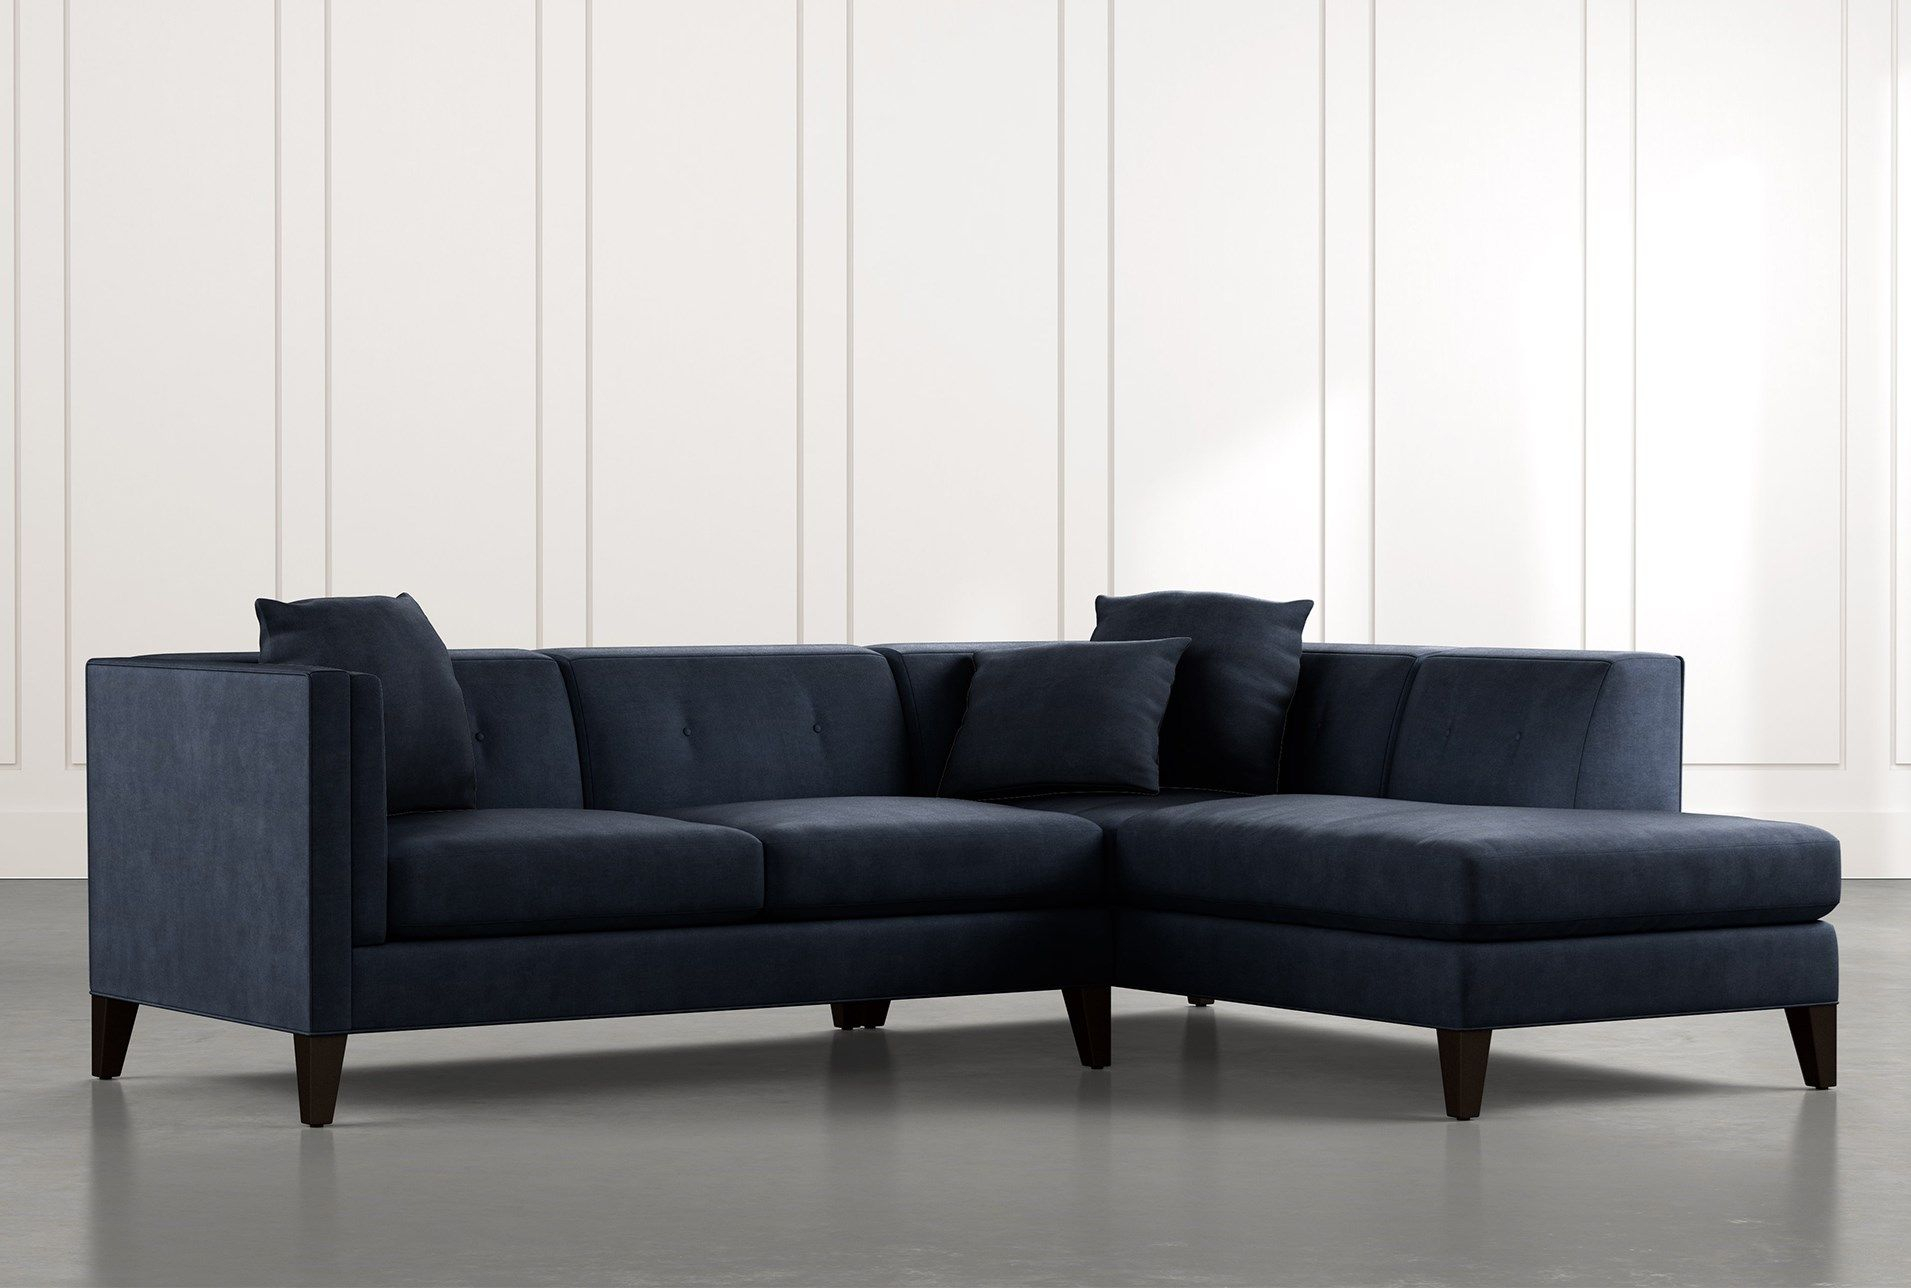 Avery Ii Navy Blue 2 Piece Sectional With Right Arm Facing With Regard To Avery 2 Piece Sectionals With Laf Armless Chaise (View 2 of 15)